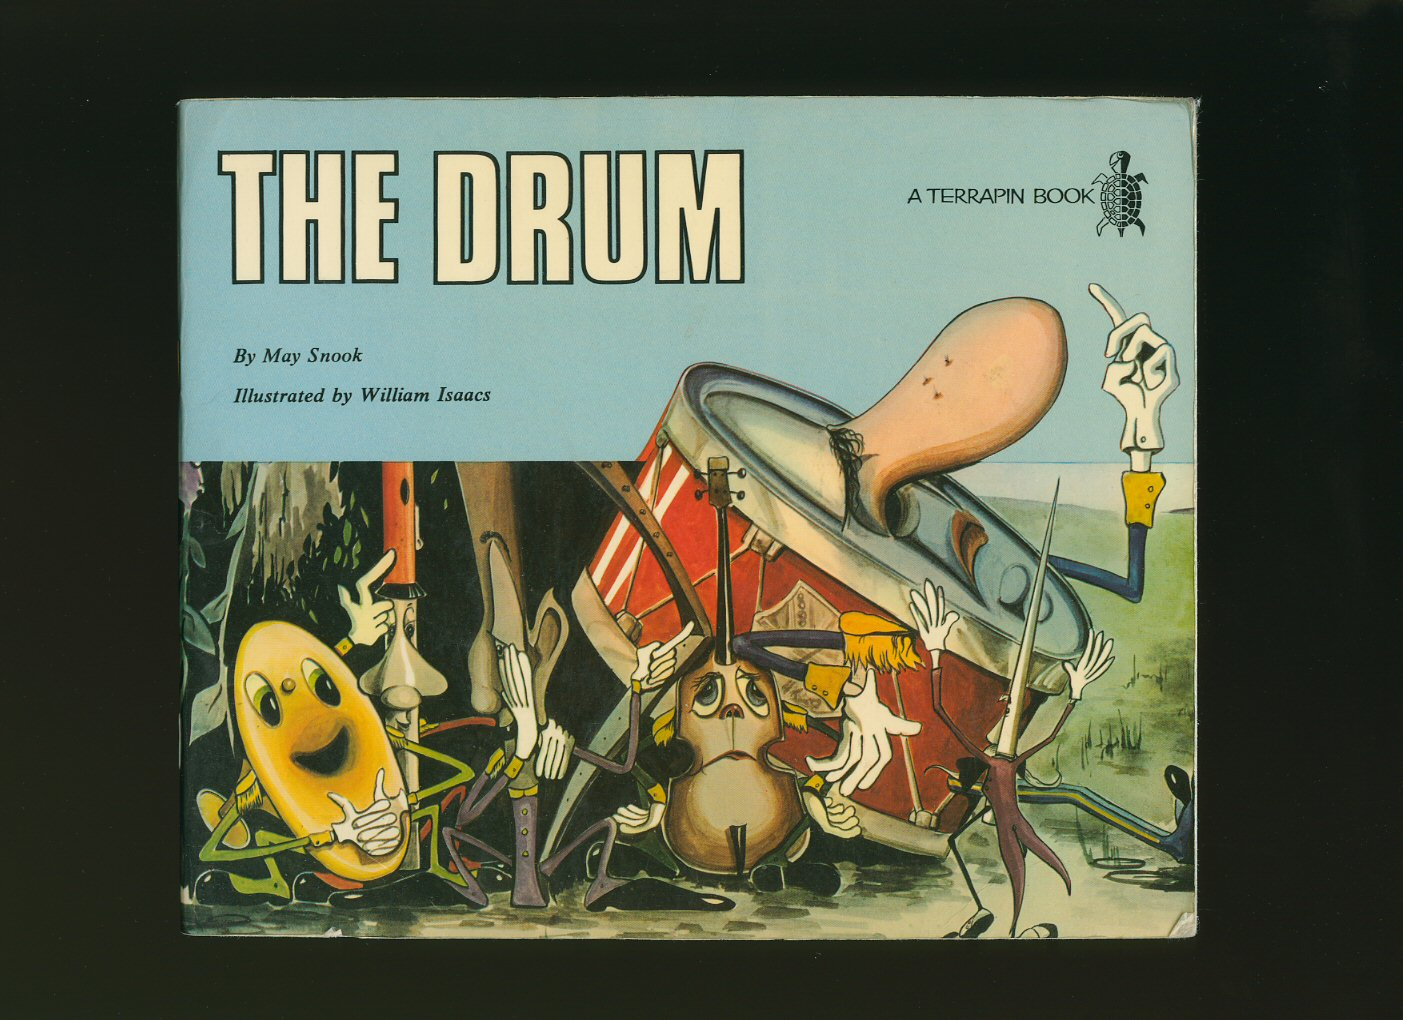 SNOOK, MAY [ILLUSTRATED BY WILLIAM ISAACS] - The Drum [A Terrapin Book]